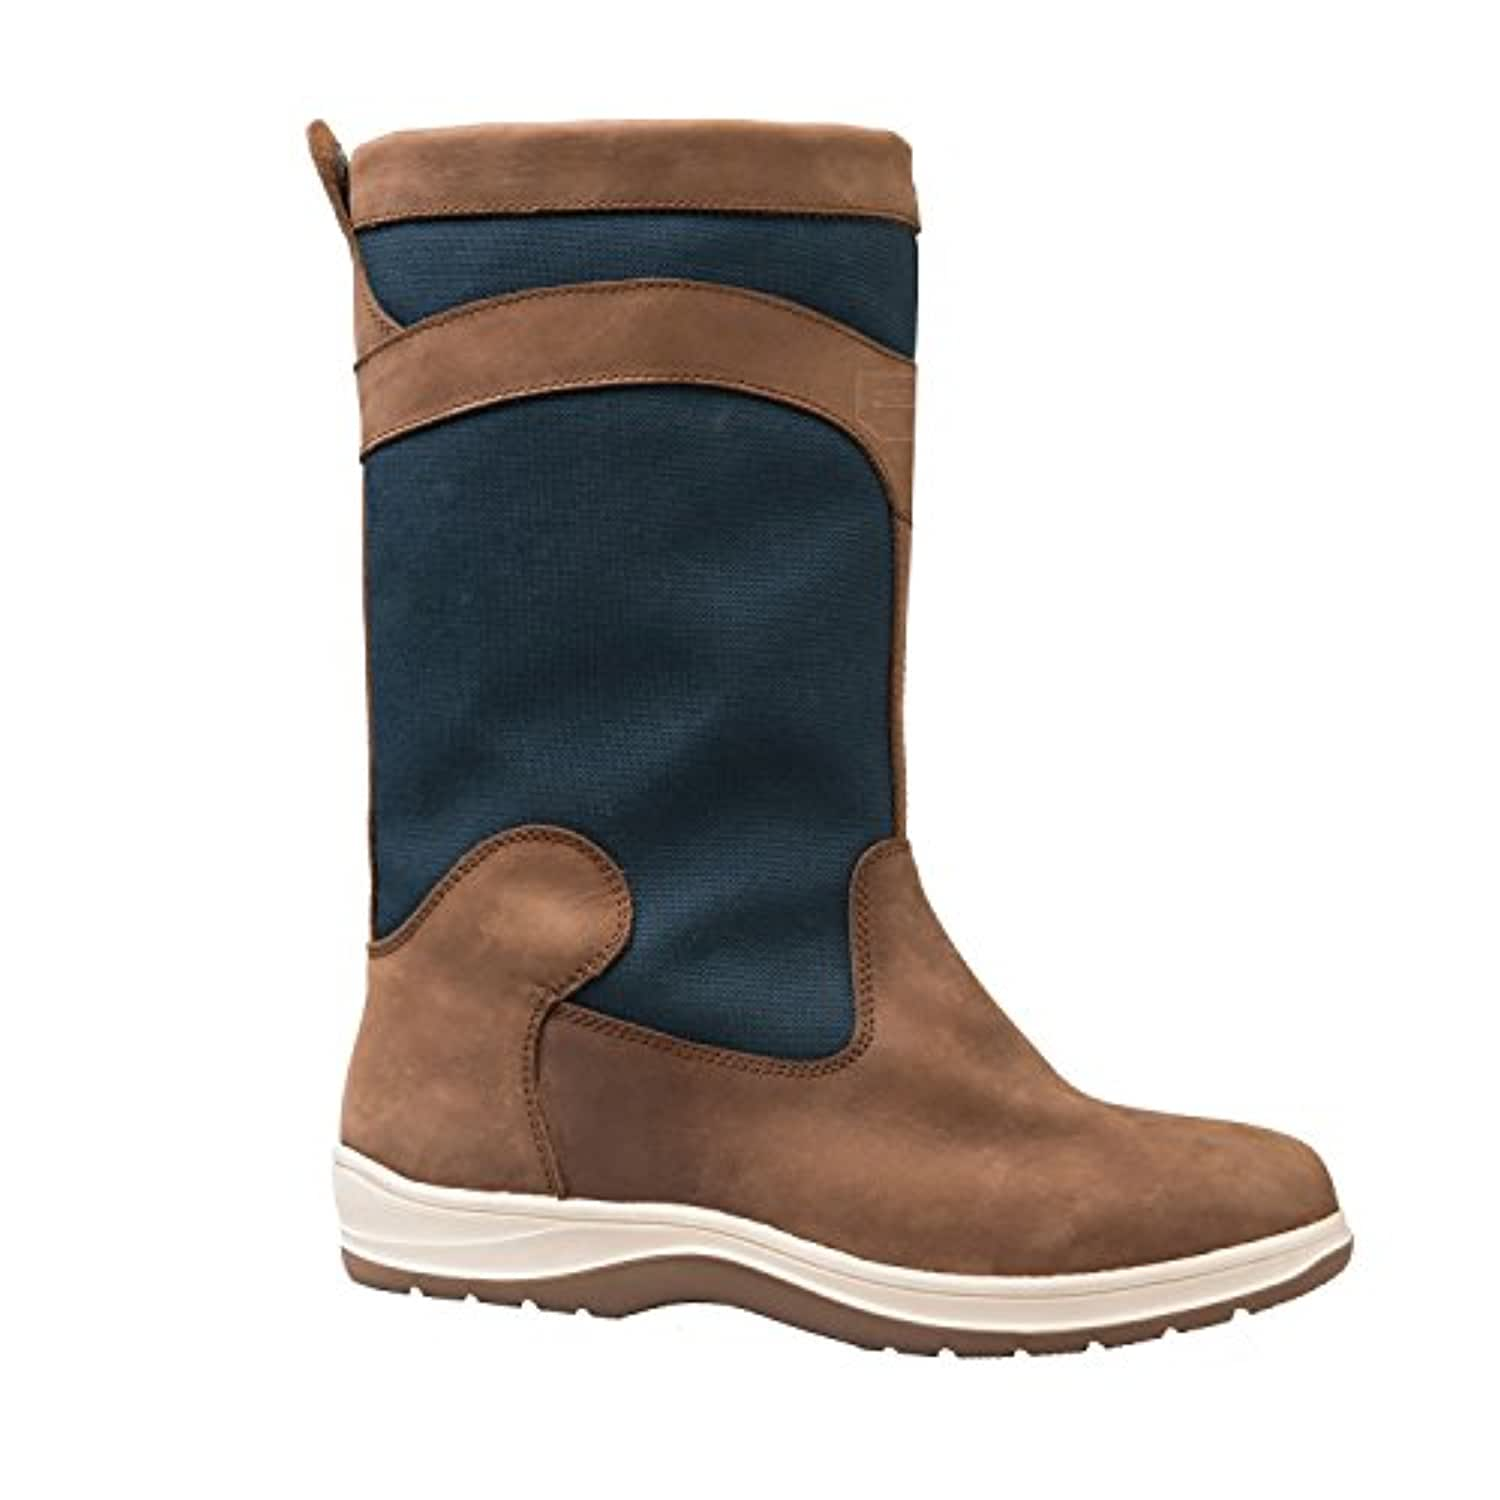 2017 Gul Fastnet Deck Boots in Tan / Navy DS1005